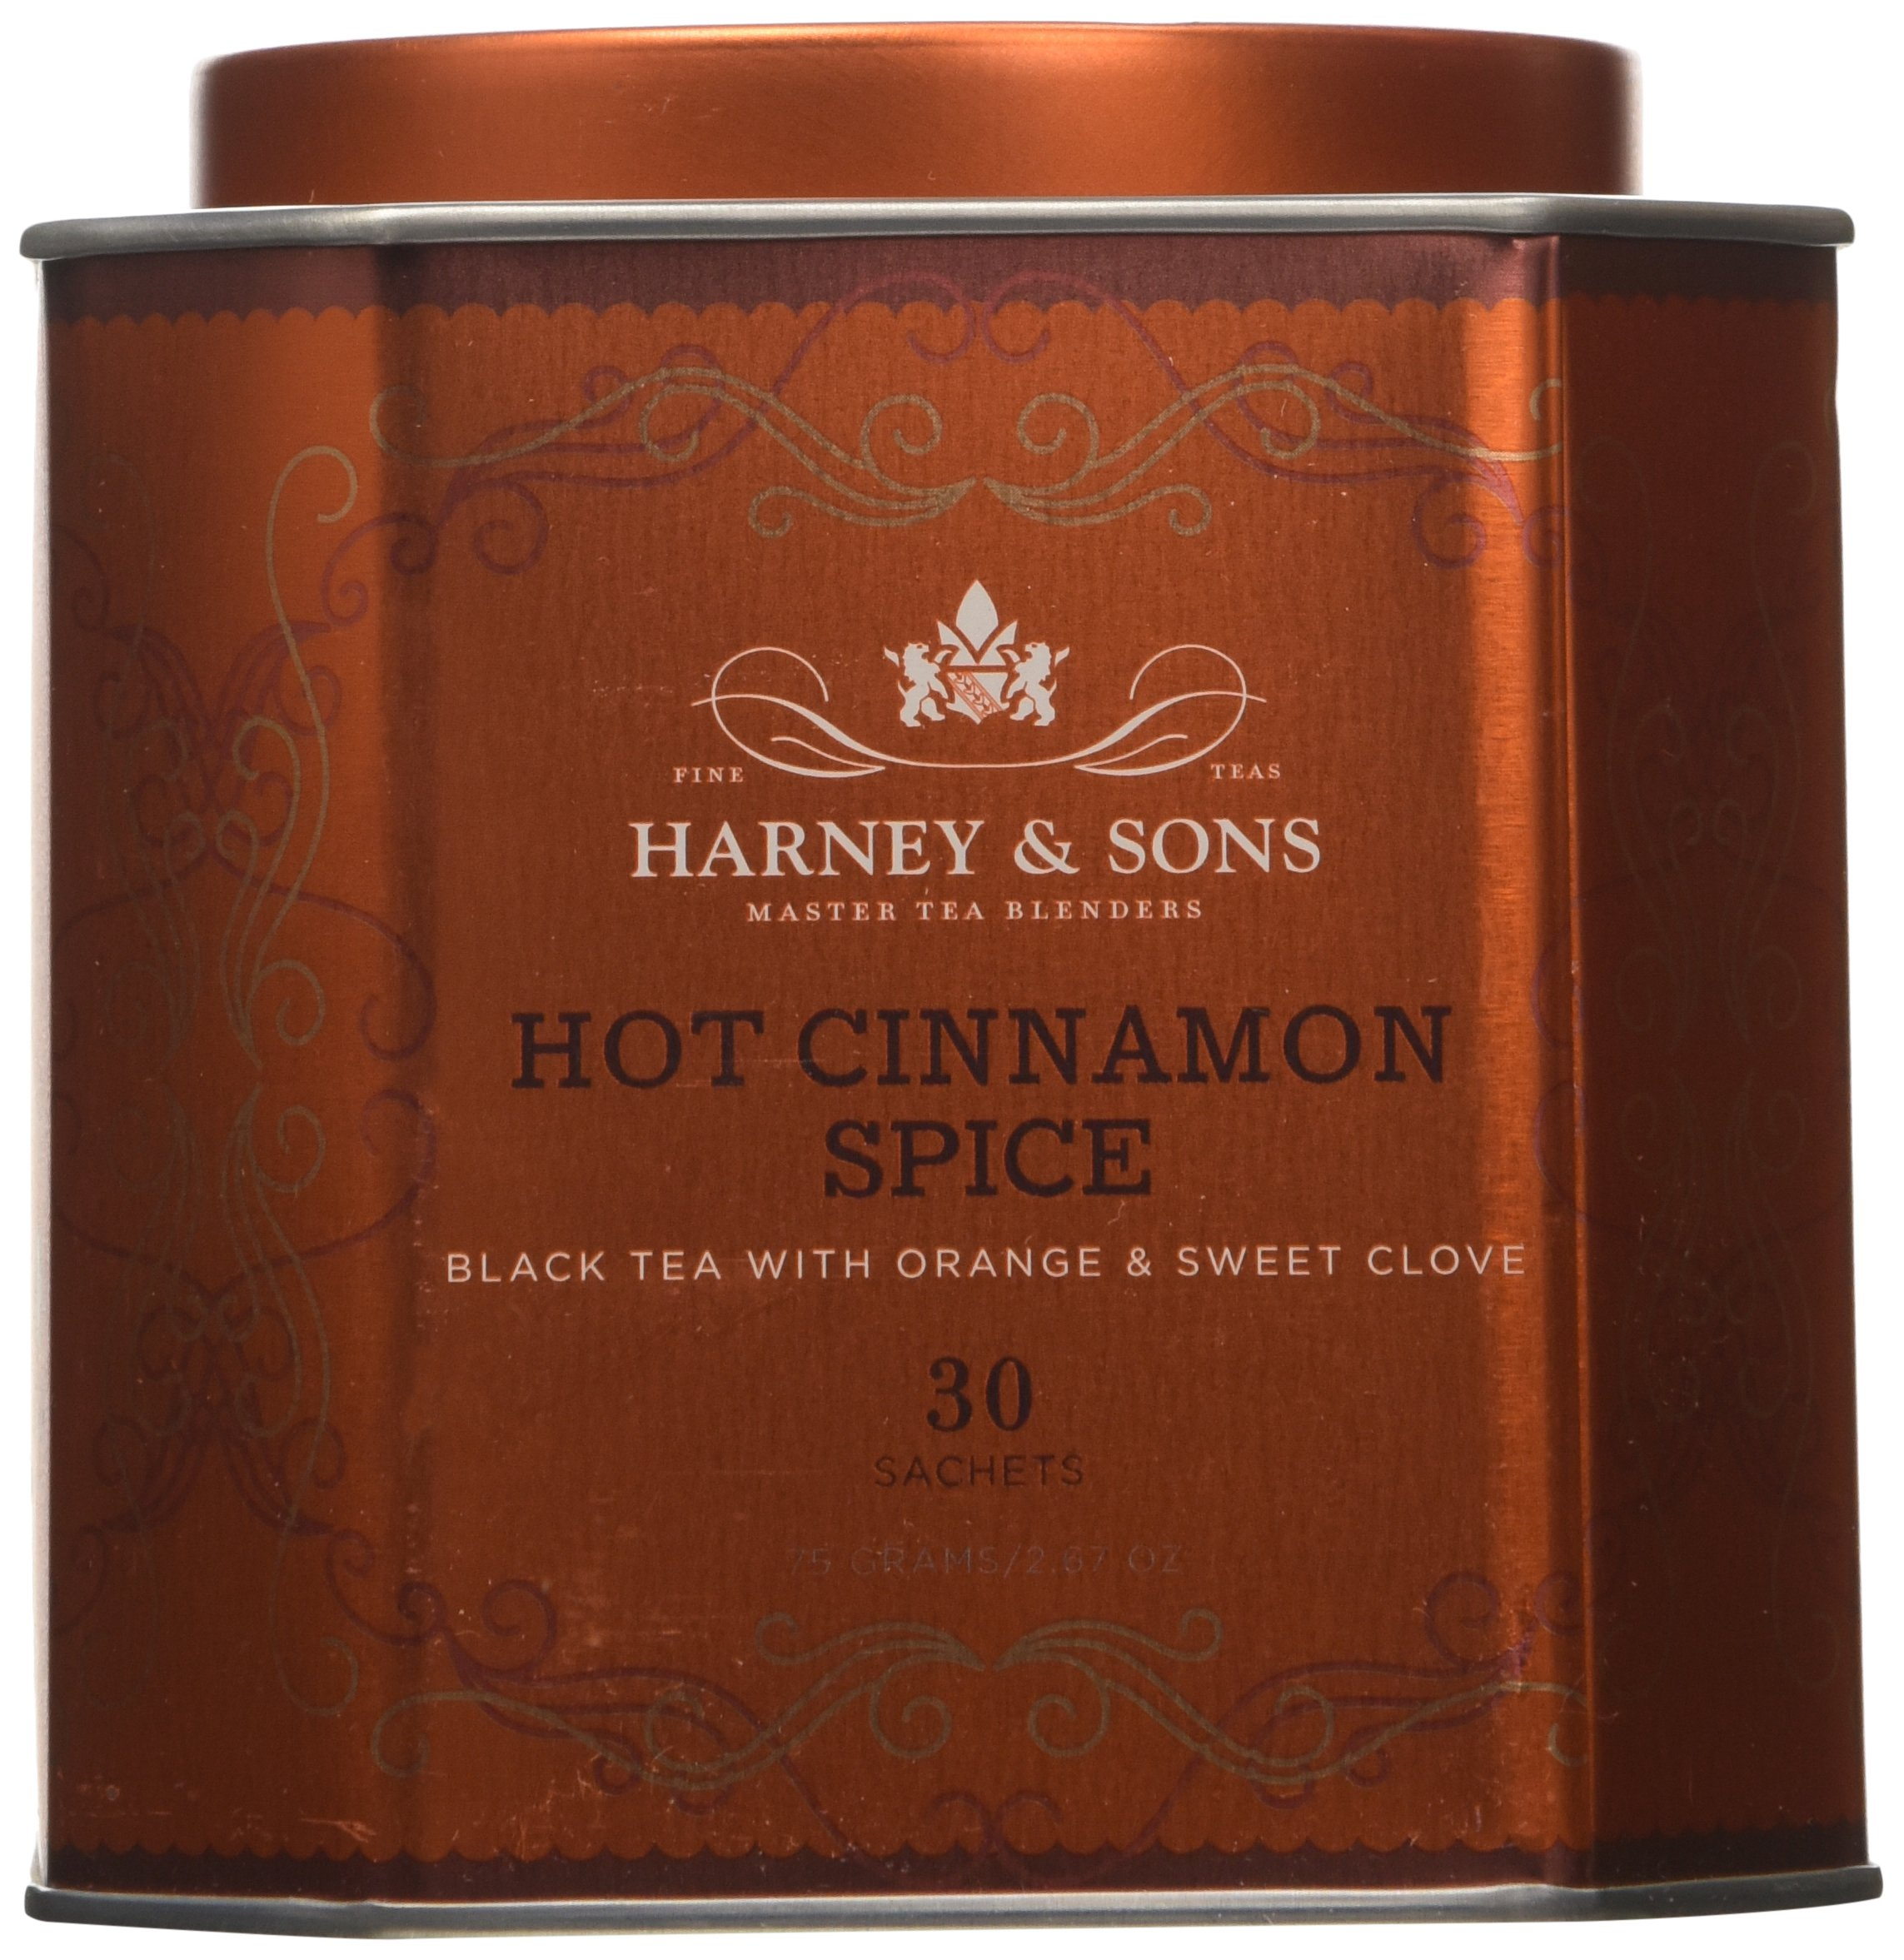 Harney & Sons Hot Cinnamon Spice Black Tea with Orange and Sweet Clove, 30 Sachets, Net Weight. 2.67 Ounce